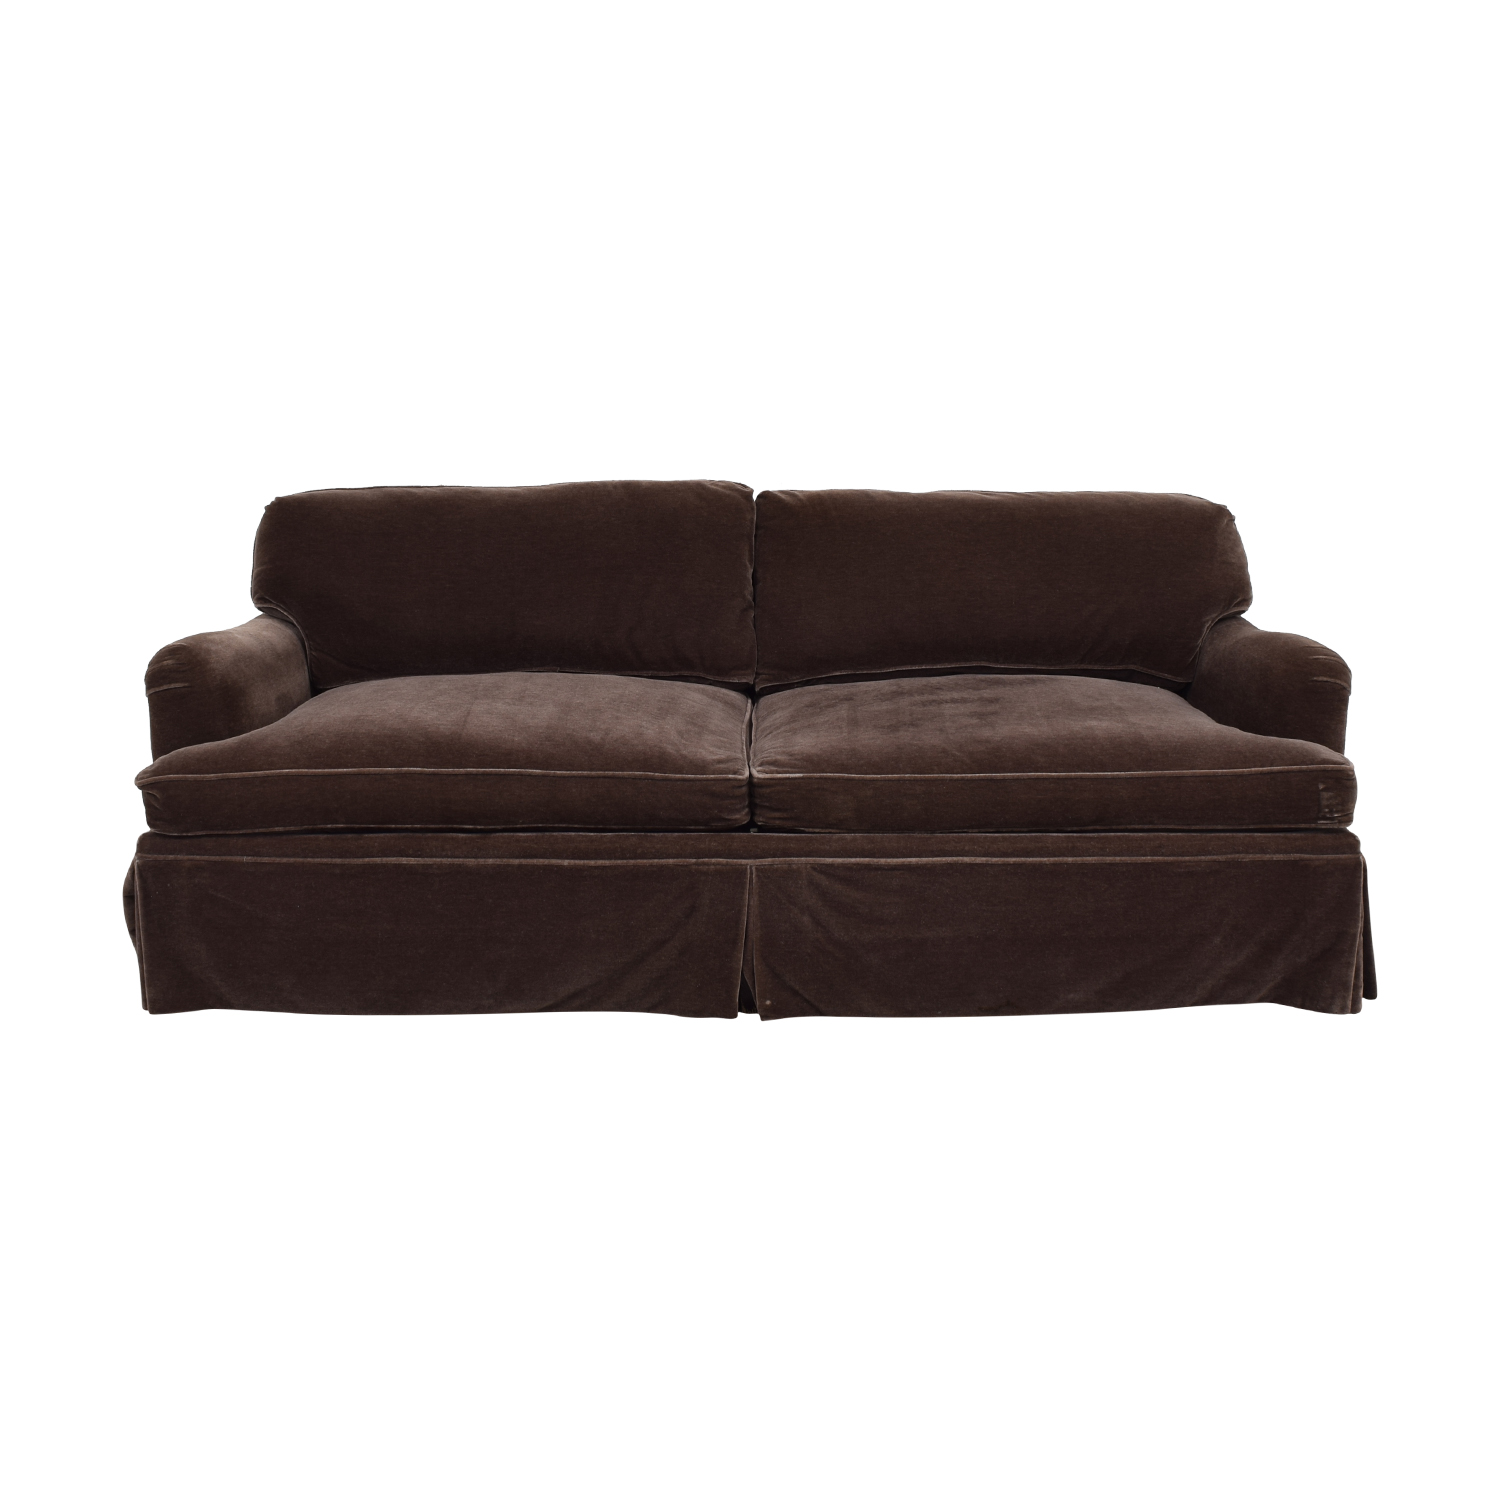 Brown Mohair Two-Cushion Couch